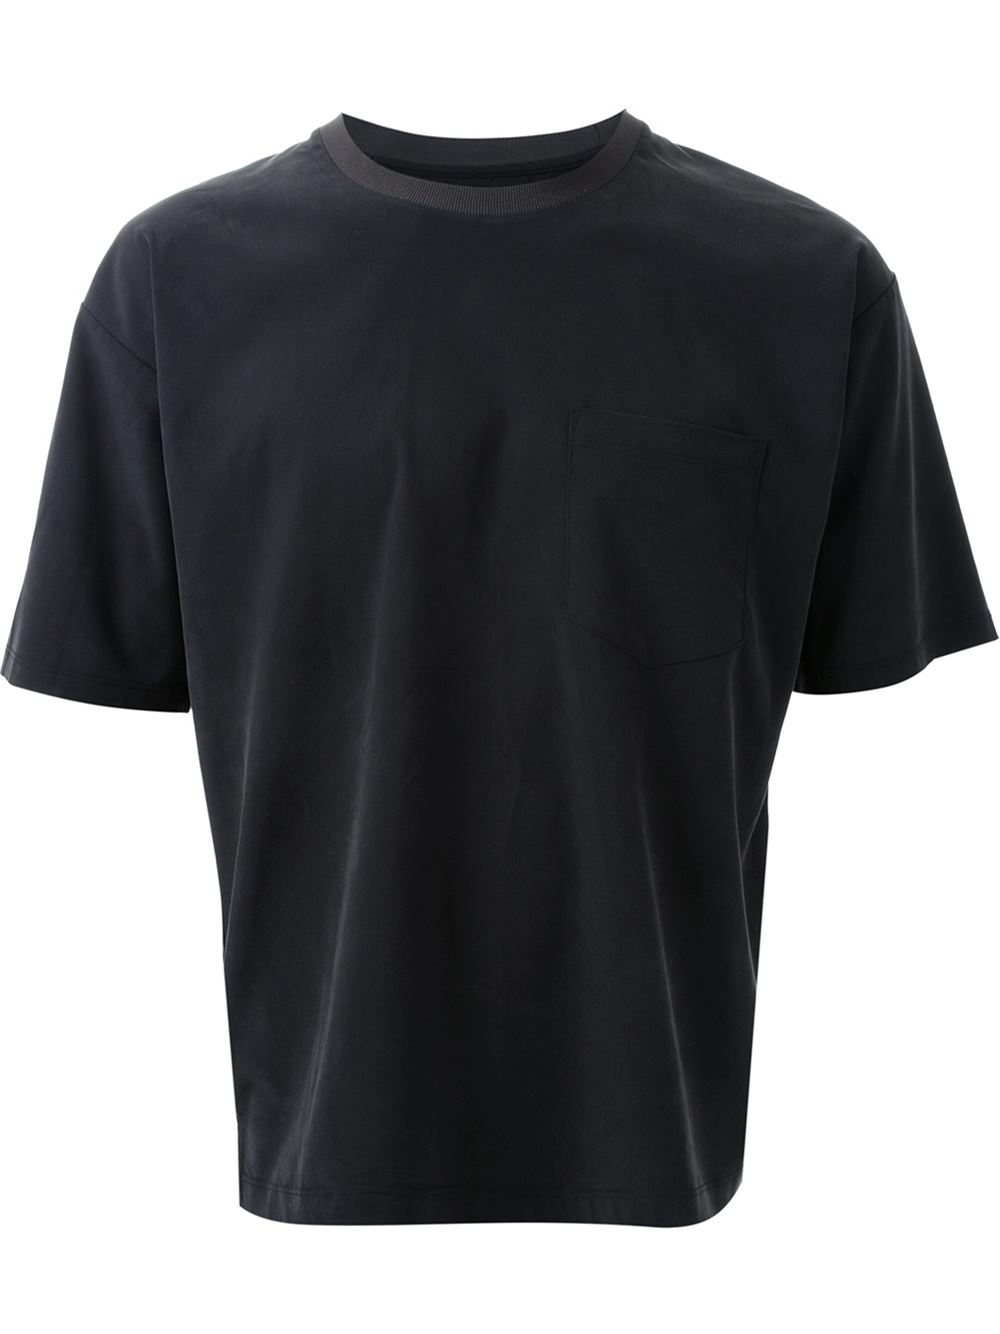 Wooyoungmi Front Pocket T Shirt In Black For Men Lyst